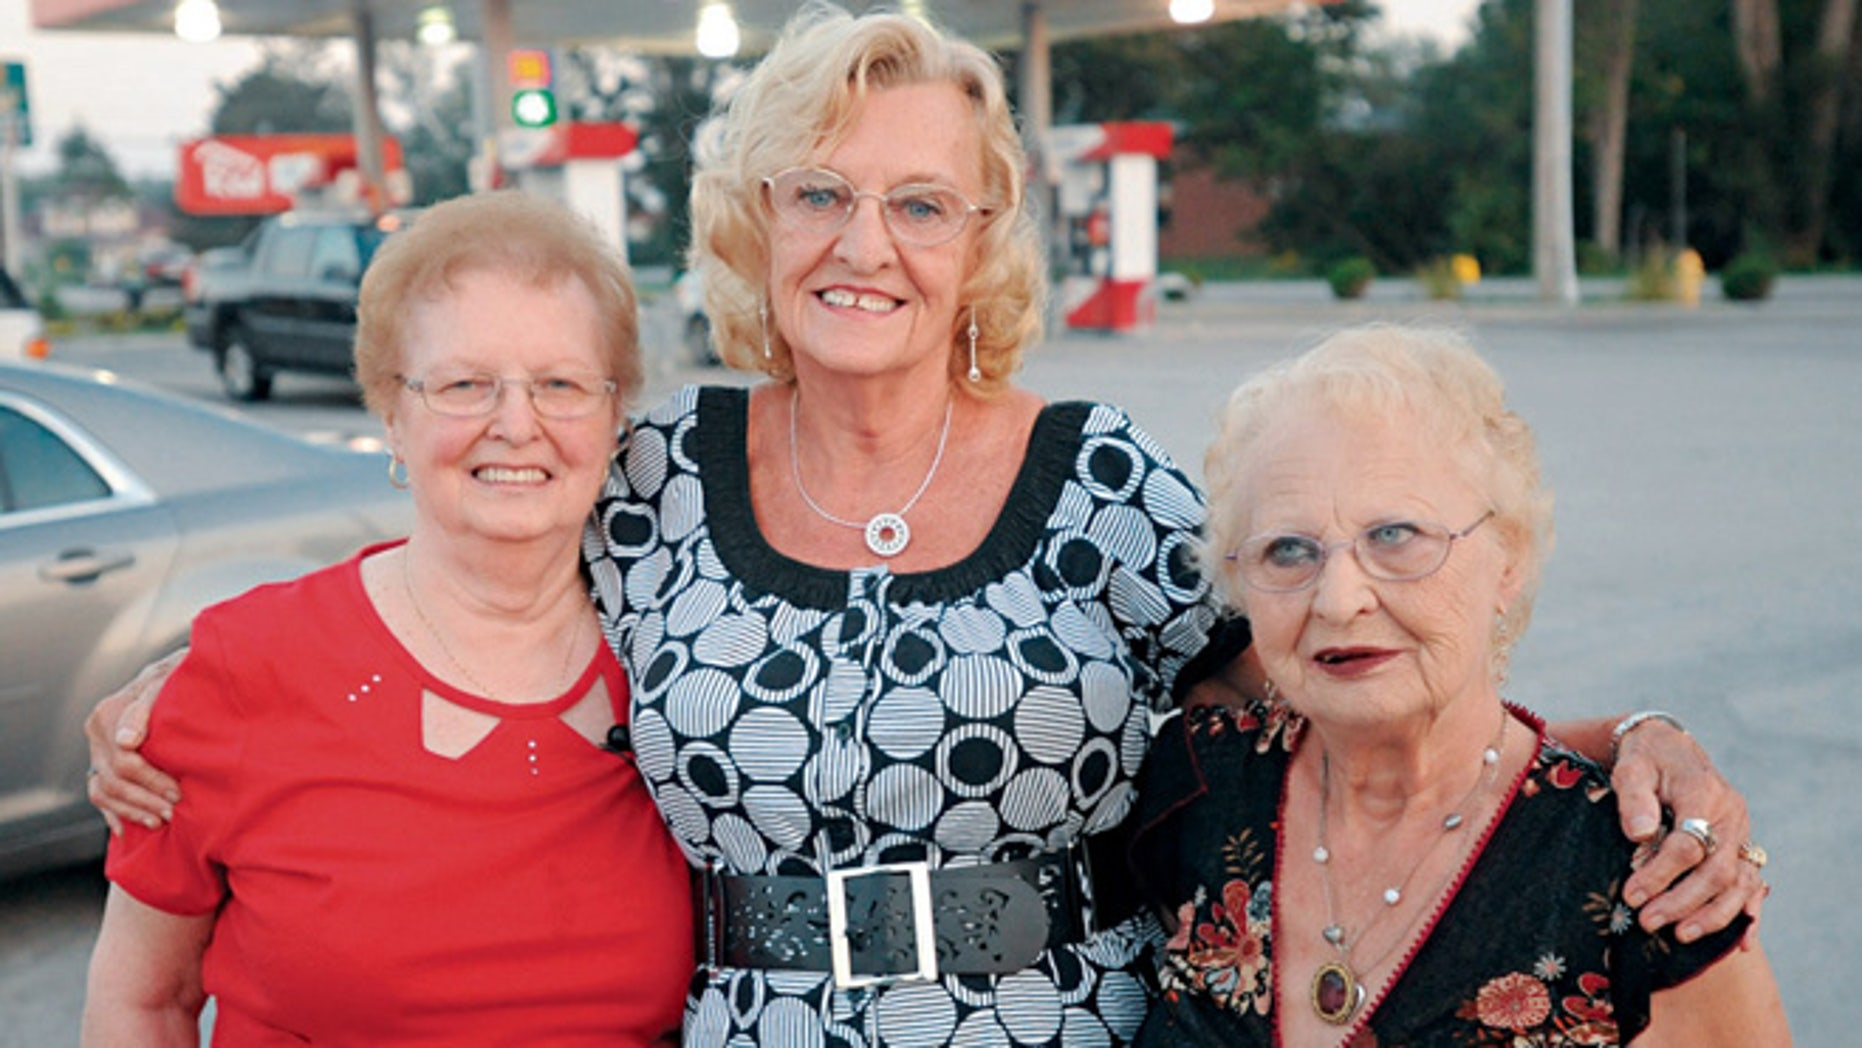 In this Sept. 10, 2013 photo, three sisters, from left, Shirley Mortellaro, 78, Mary Kidwell, 77, and Joan Billings, 80 are reunited in Batavia, N.Y., 73 years after their mother abandoned the older two in Toronto and disappeared with Mary.